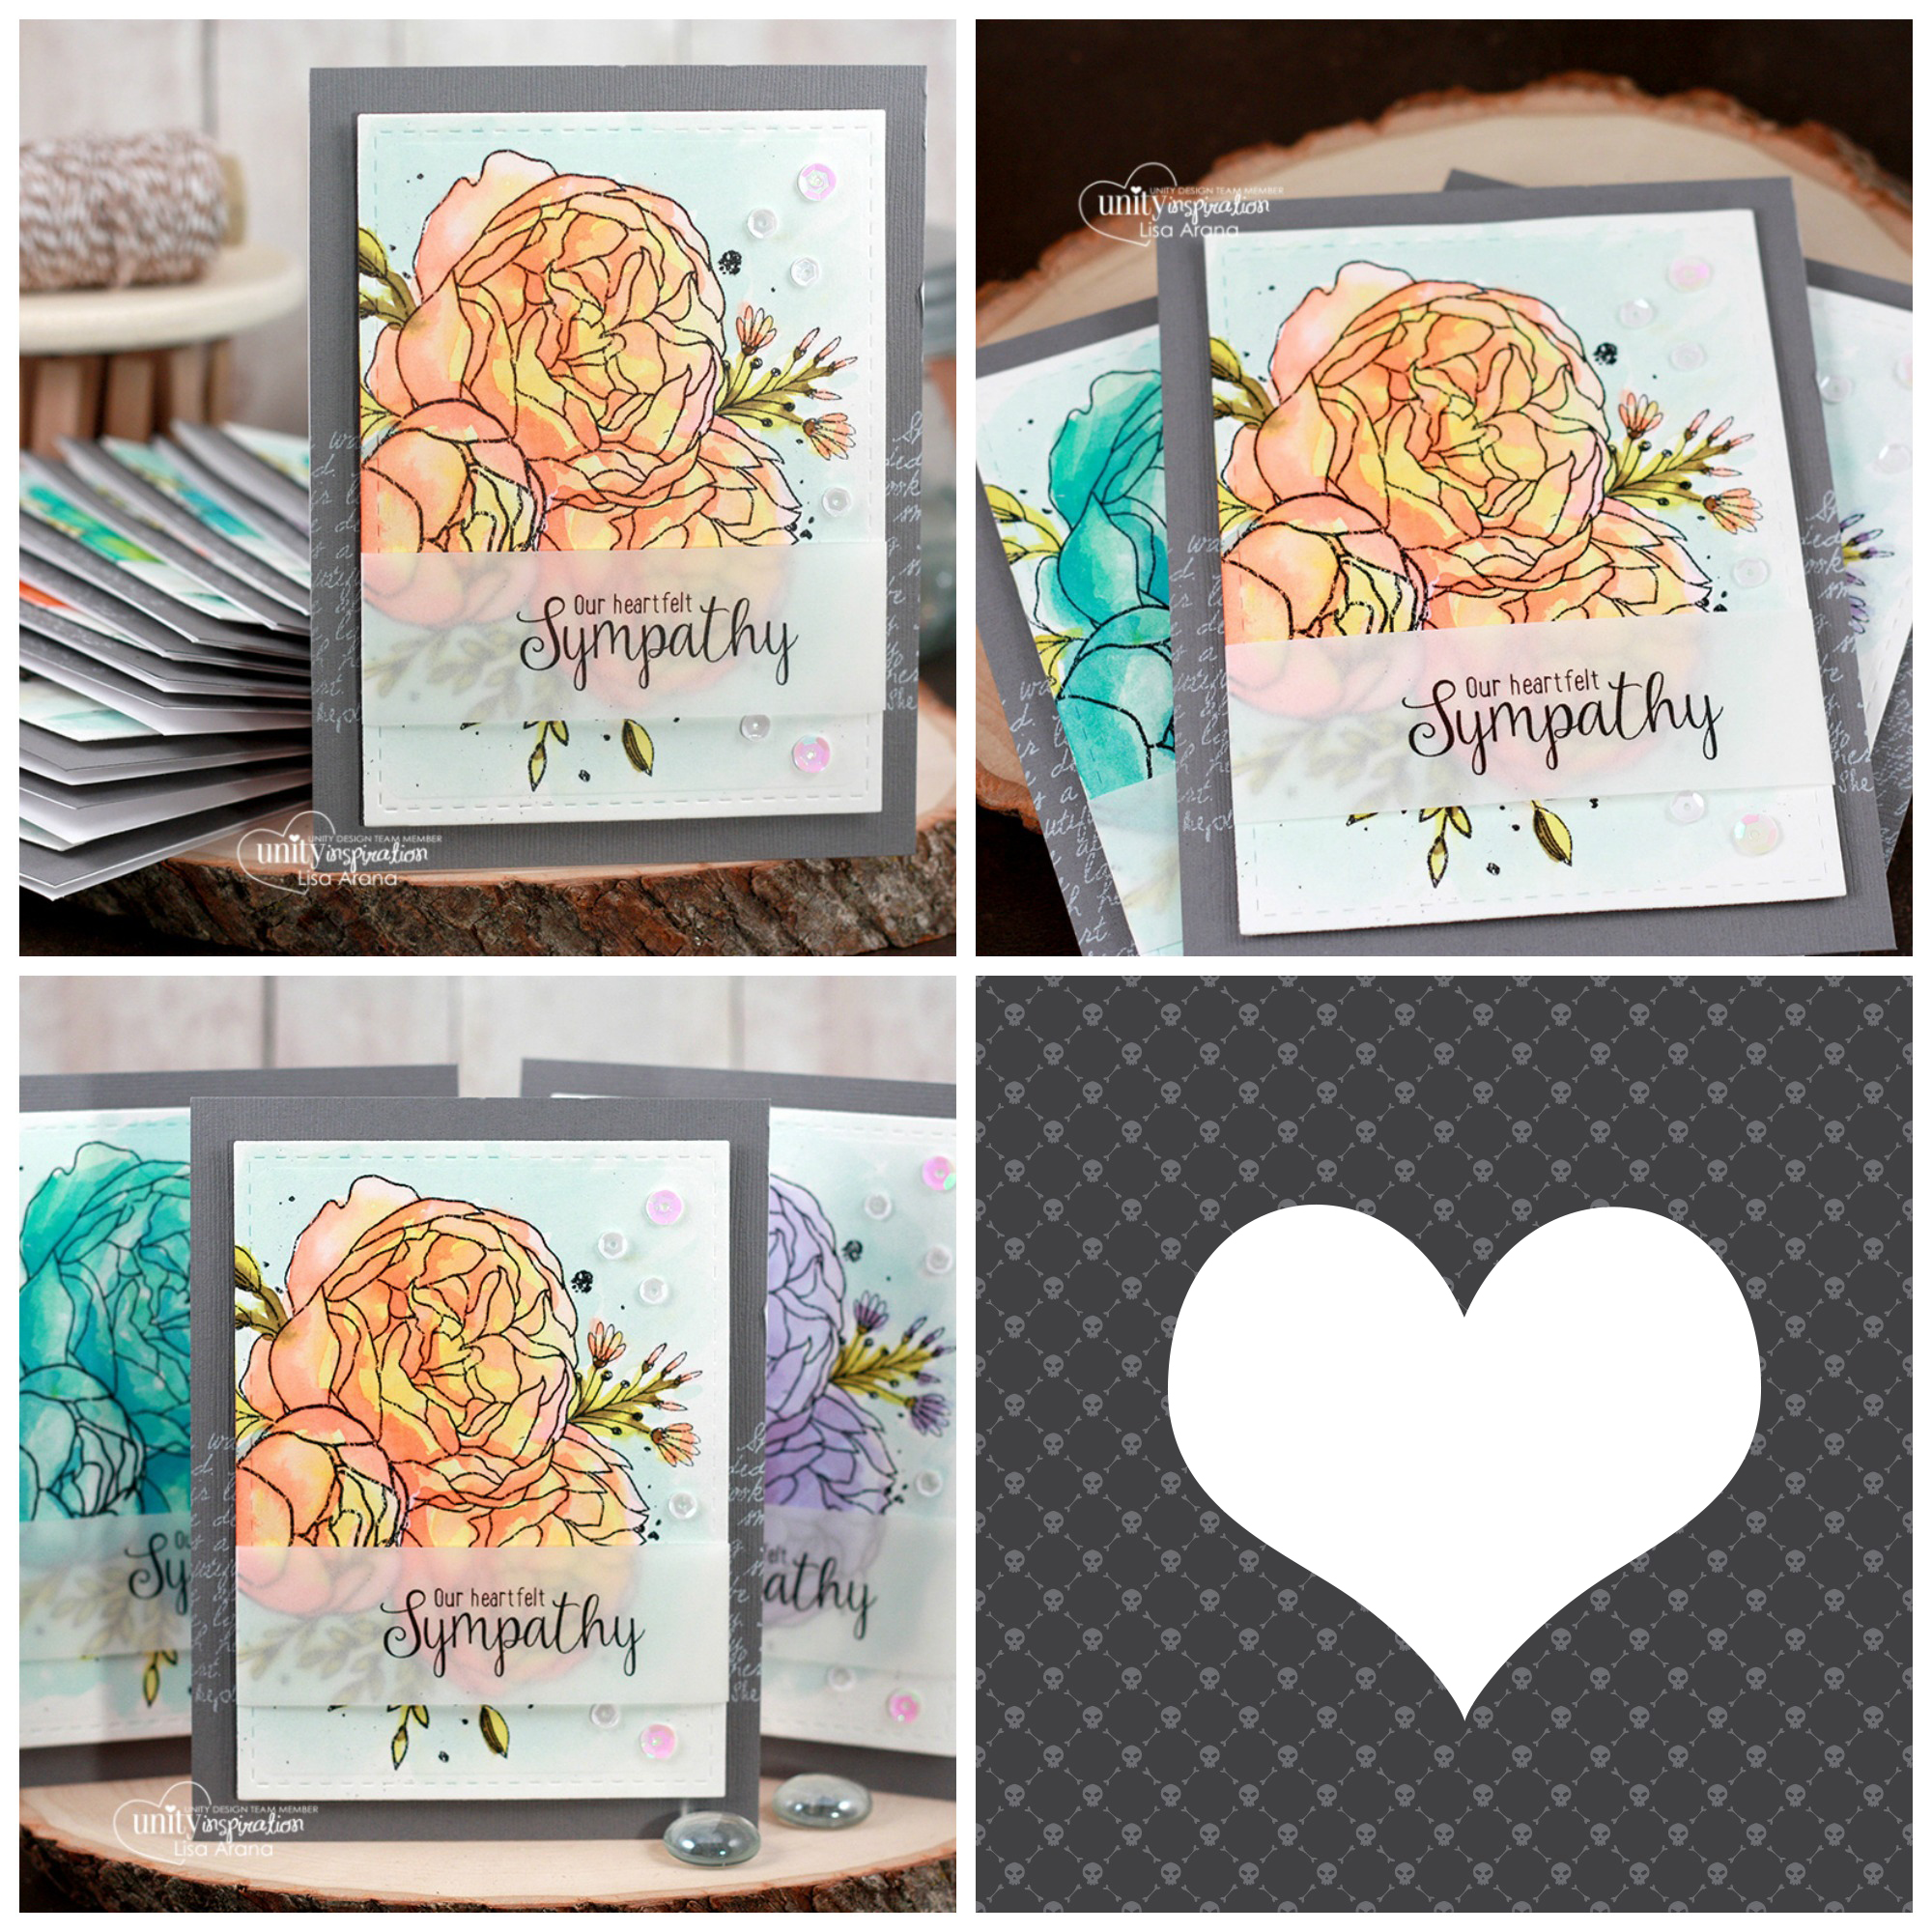 Sharing a set of watercolor sympathy cards using Girl Truly by Unity Stamp Company. #cardmaking #cardmaker #cards #stamping #dahlhousedesigns #unitystampco #handmadecards #diecutting #diy #stationary